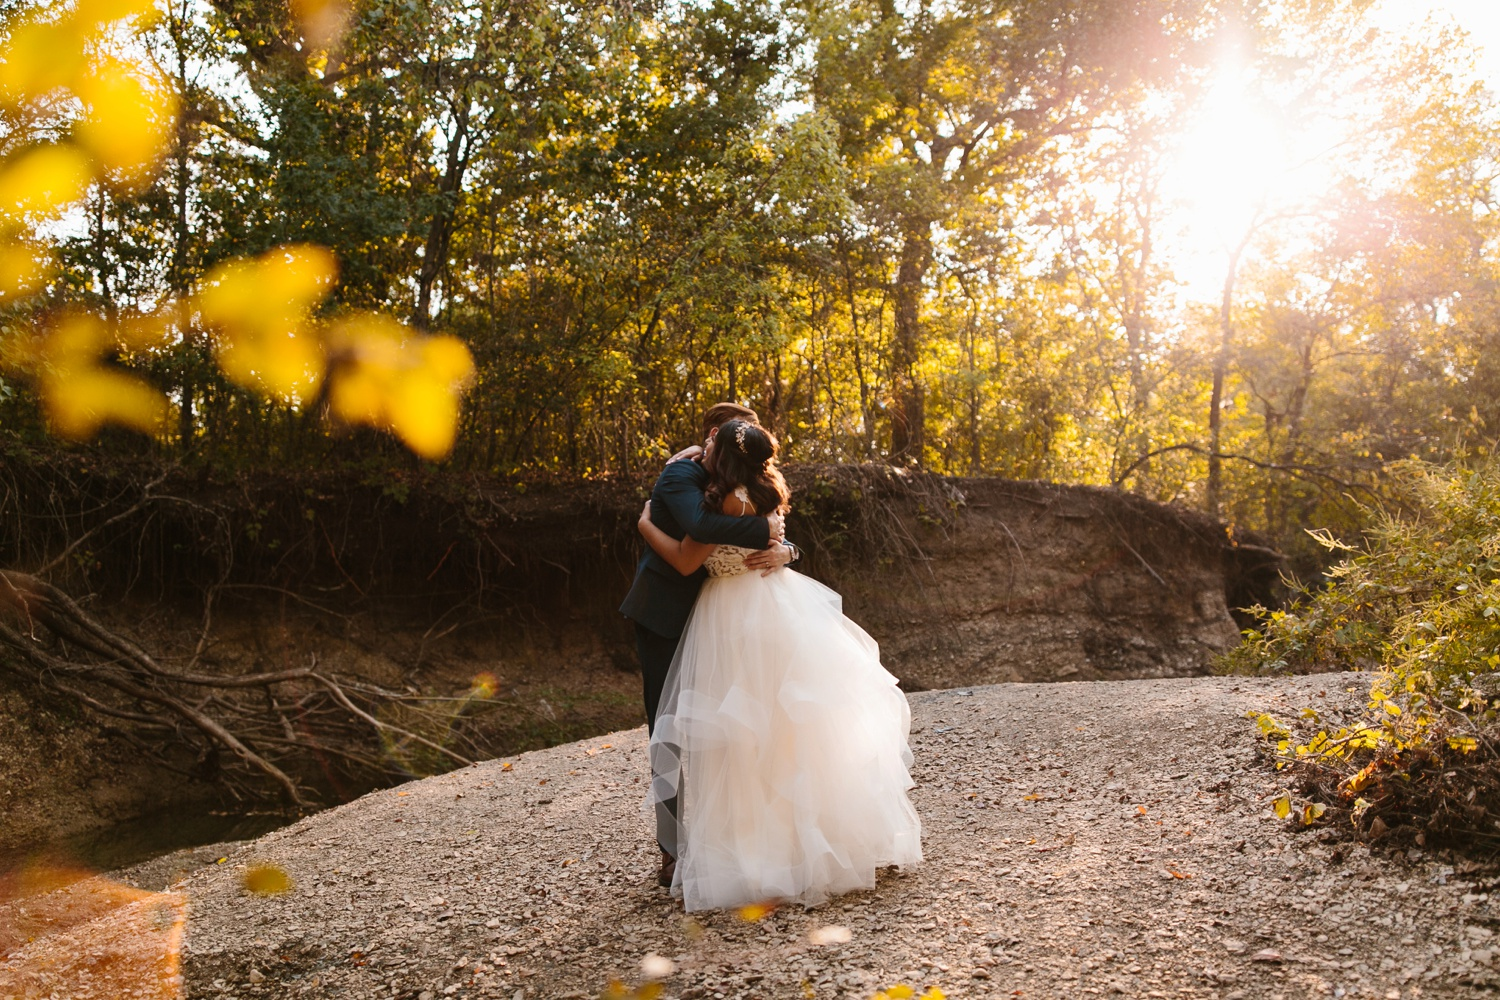 Grant + Lysette | a vibrant, deep burgundy and navy, and mixed metals wedding at Hidden Pines Chapel by North Texas Wedding Photographer Rachel Meagan Photography 201